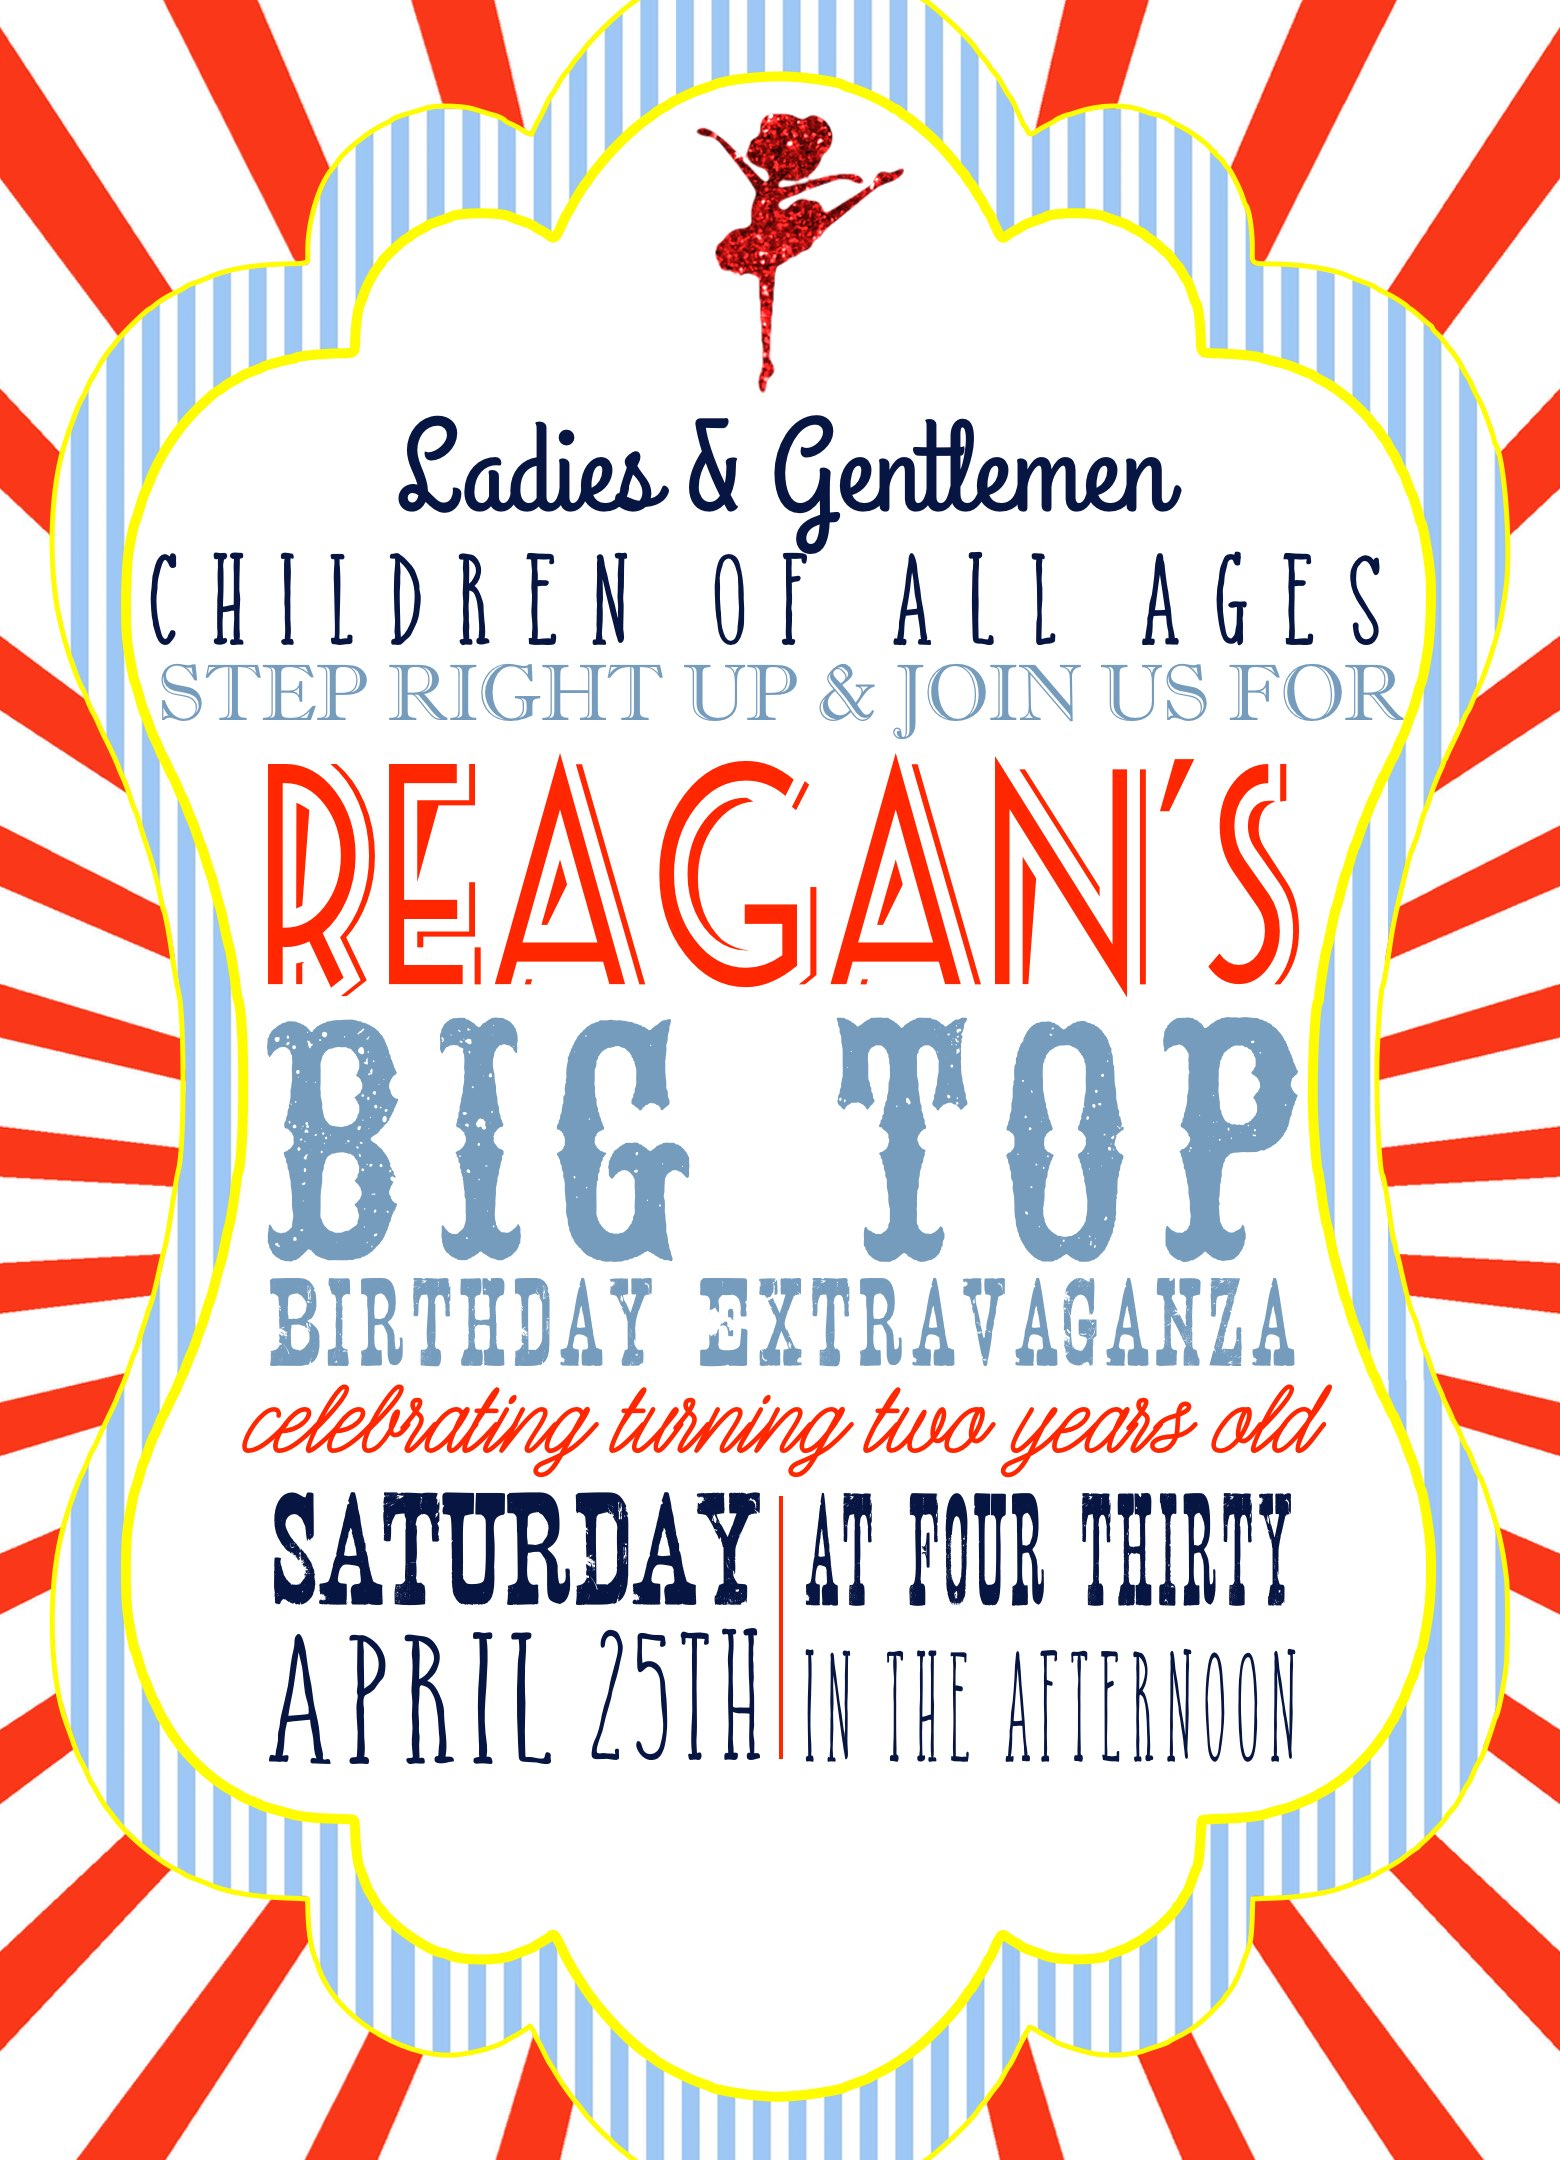 A Big Top Birthday Party Extravaganza